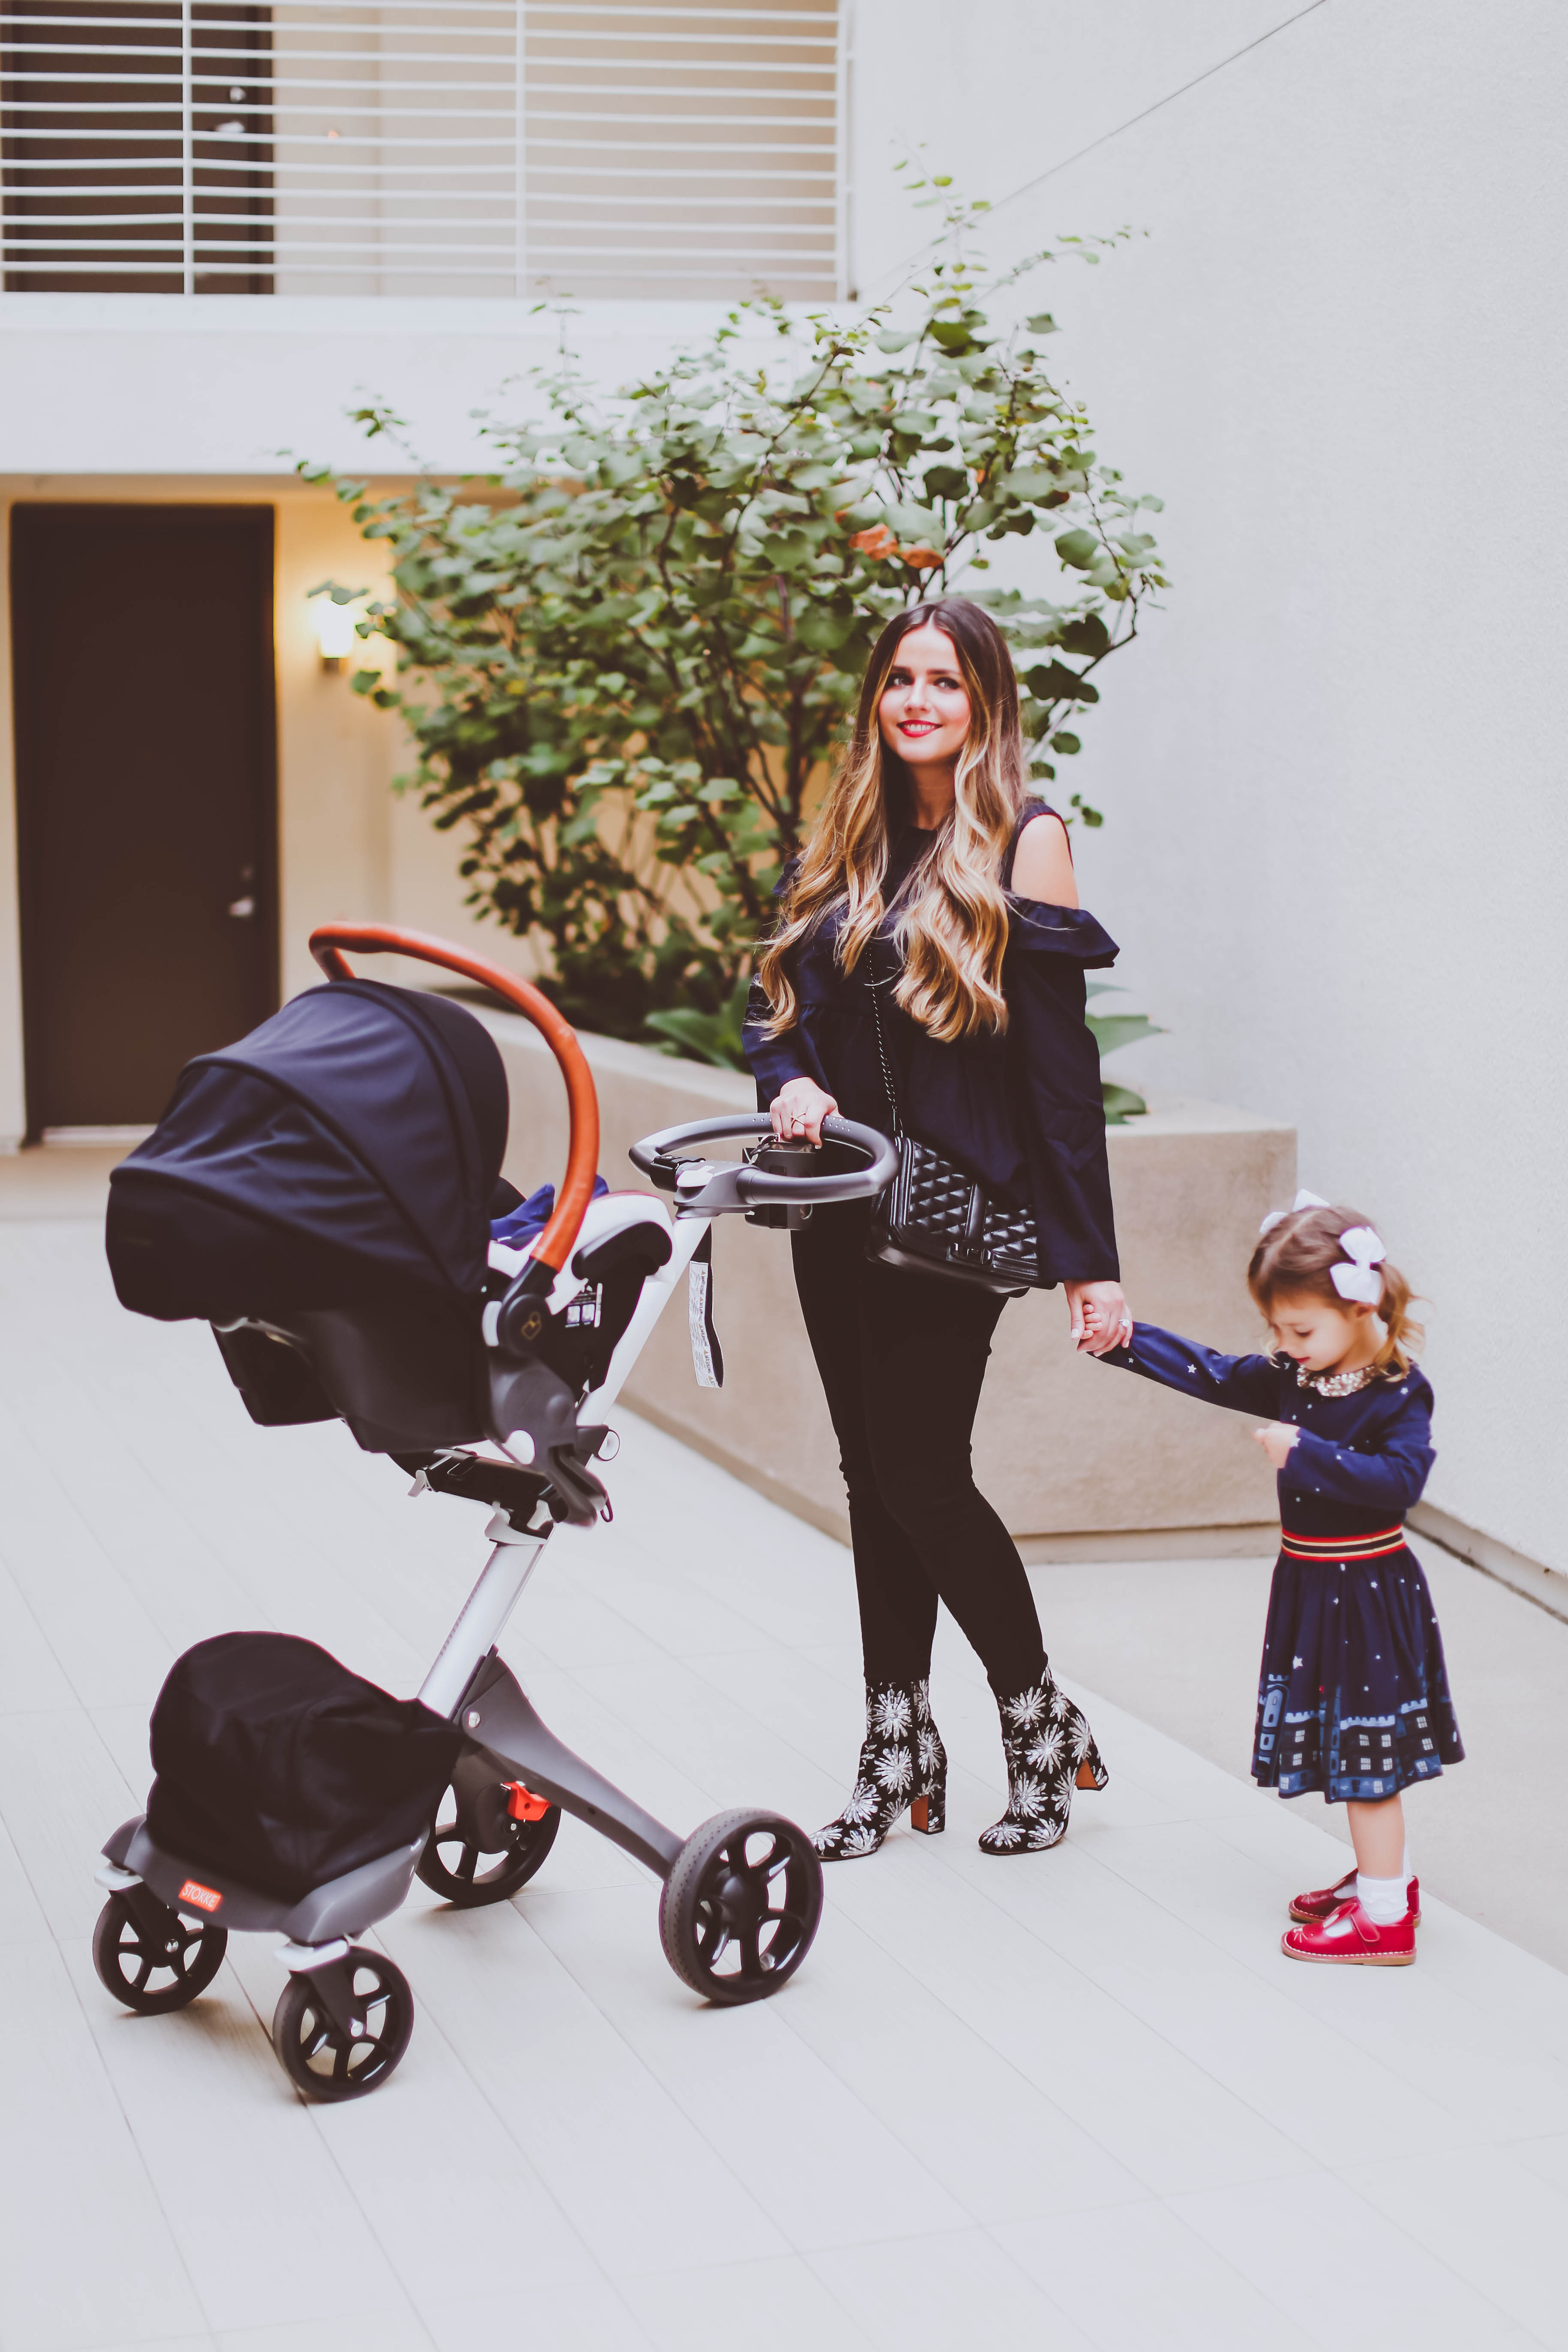 stokke xplory v5 stroller, maxi-cosi rachel zoe car seat, fall outfit ideas, fall style, bp cold shoulder ruffle blouse, nordstrom, mom of 2 fashion blogger, marc fisher grazie sequin bootie, jen7 coated black skinny jeans, rebecca minkoff love cross body bag, mini boden toddler girl dress, livie and luca bunny shoes